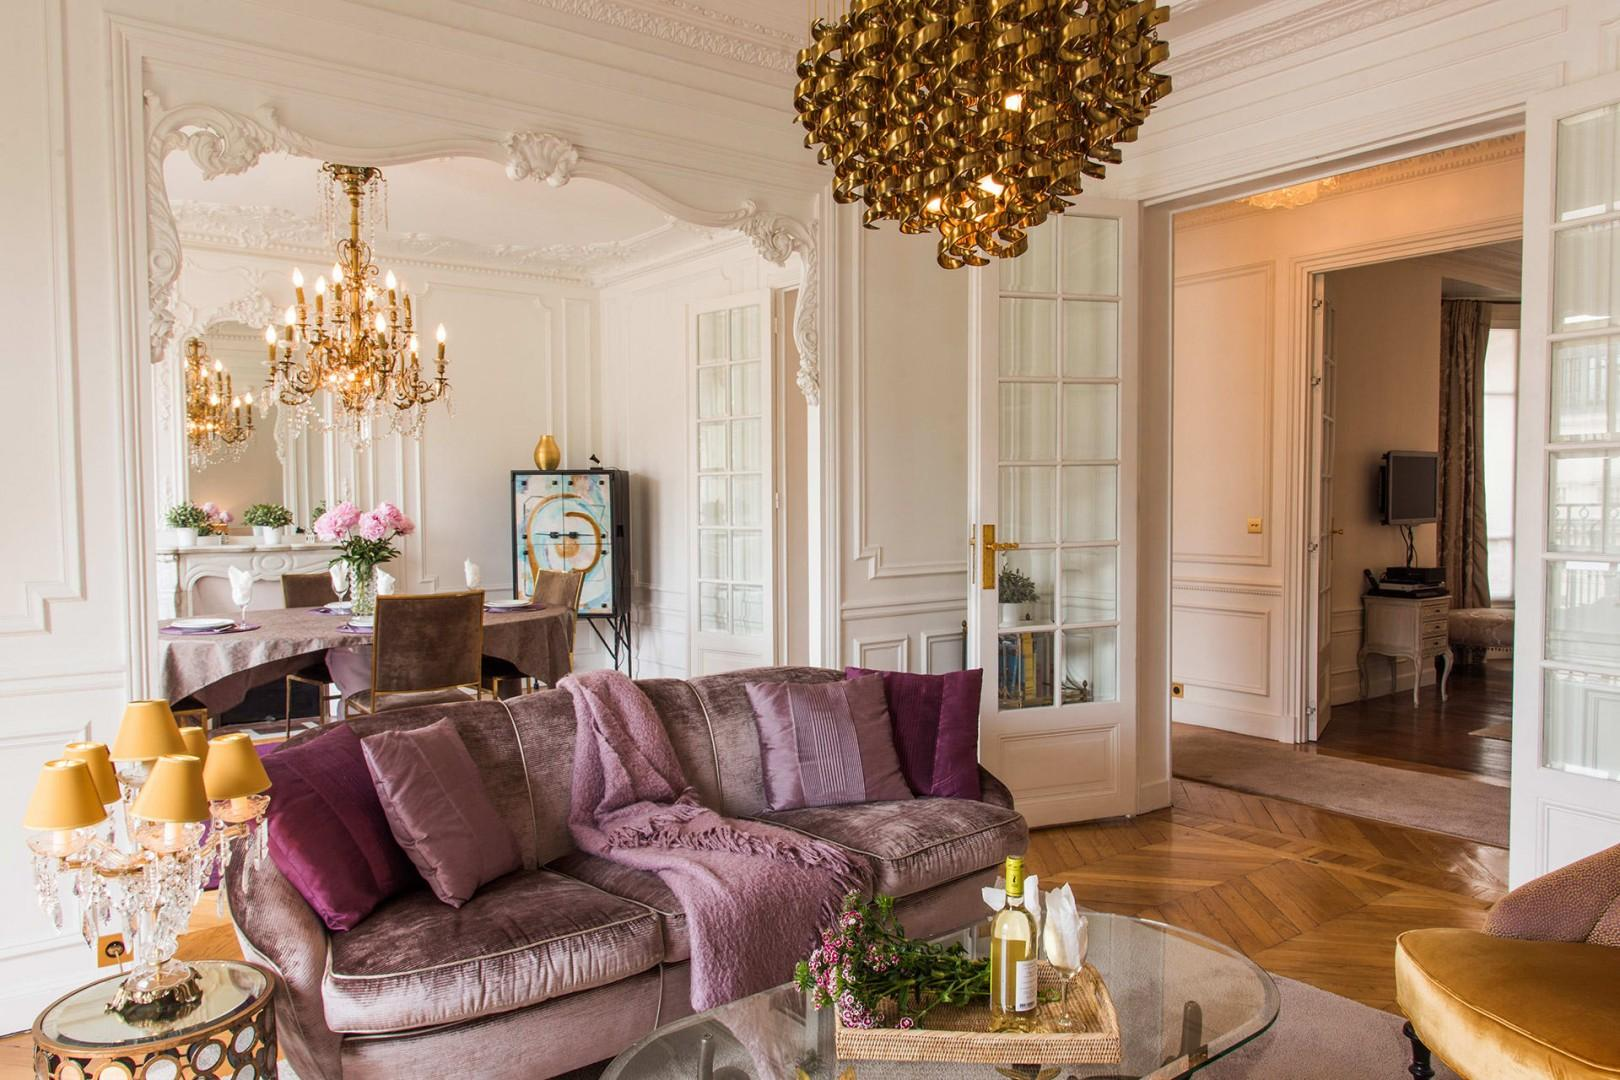 Every detail in this deluxe apartment has been carefully finished.